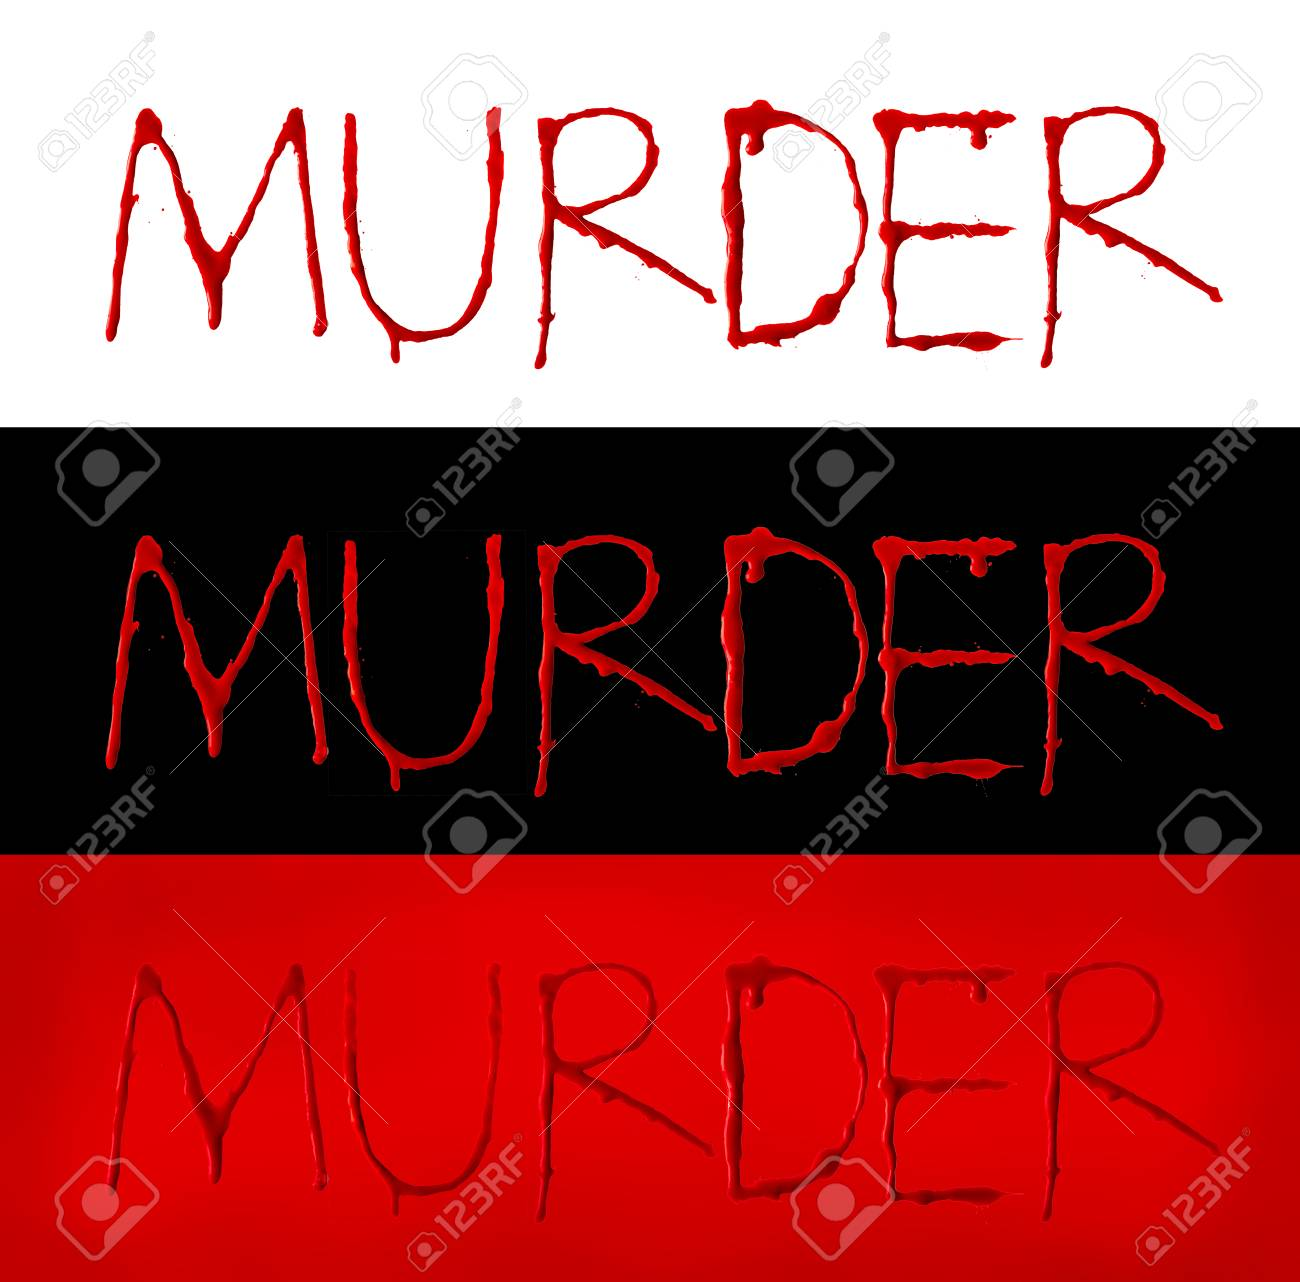 """Stock Photo - Collection of letters blood written dripping fonts """"MURDER"""" with clipping path, Horror and emergency concept, Isolated on white, black and red ..."""